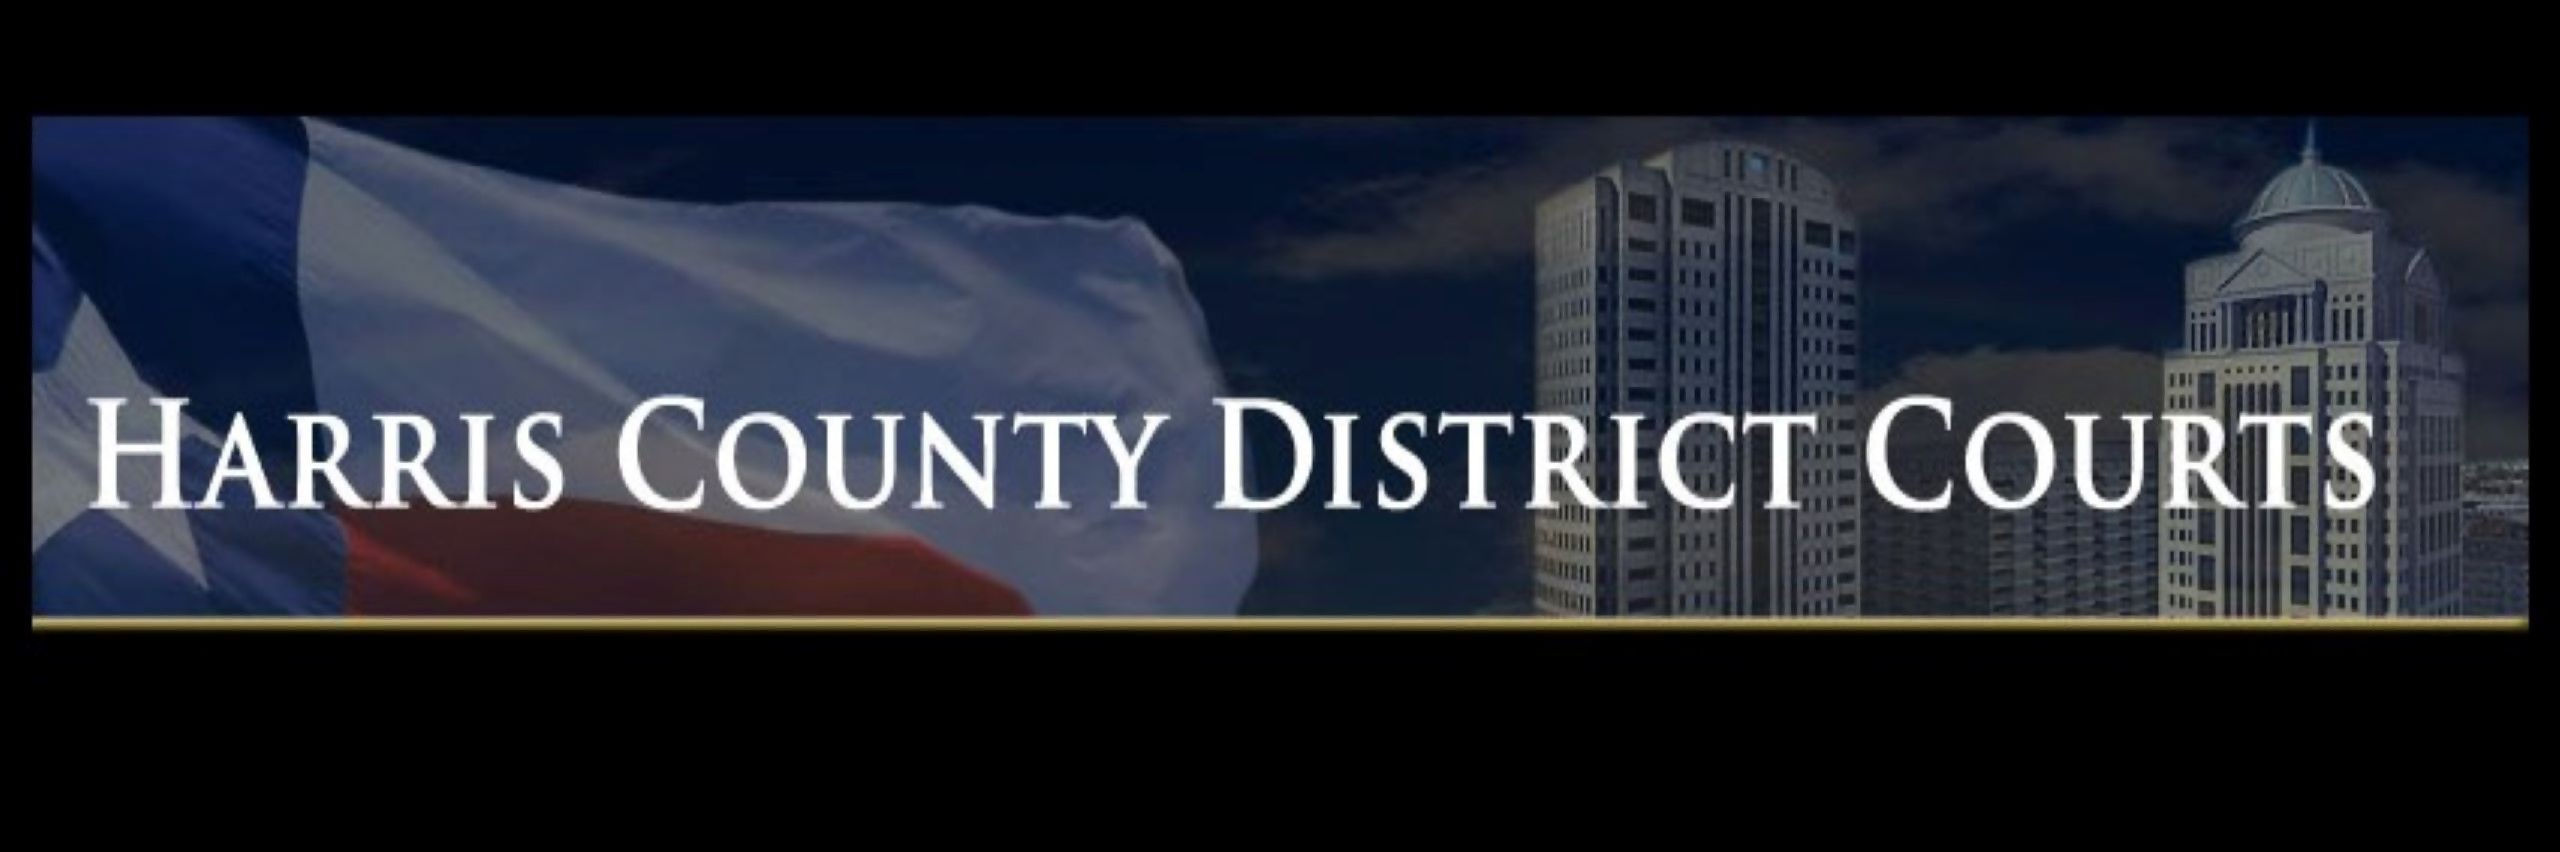 334th District Court - Live Stream